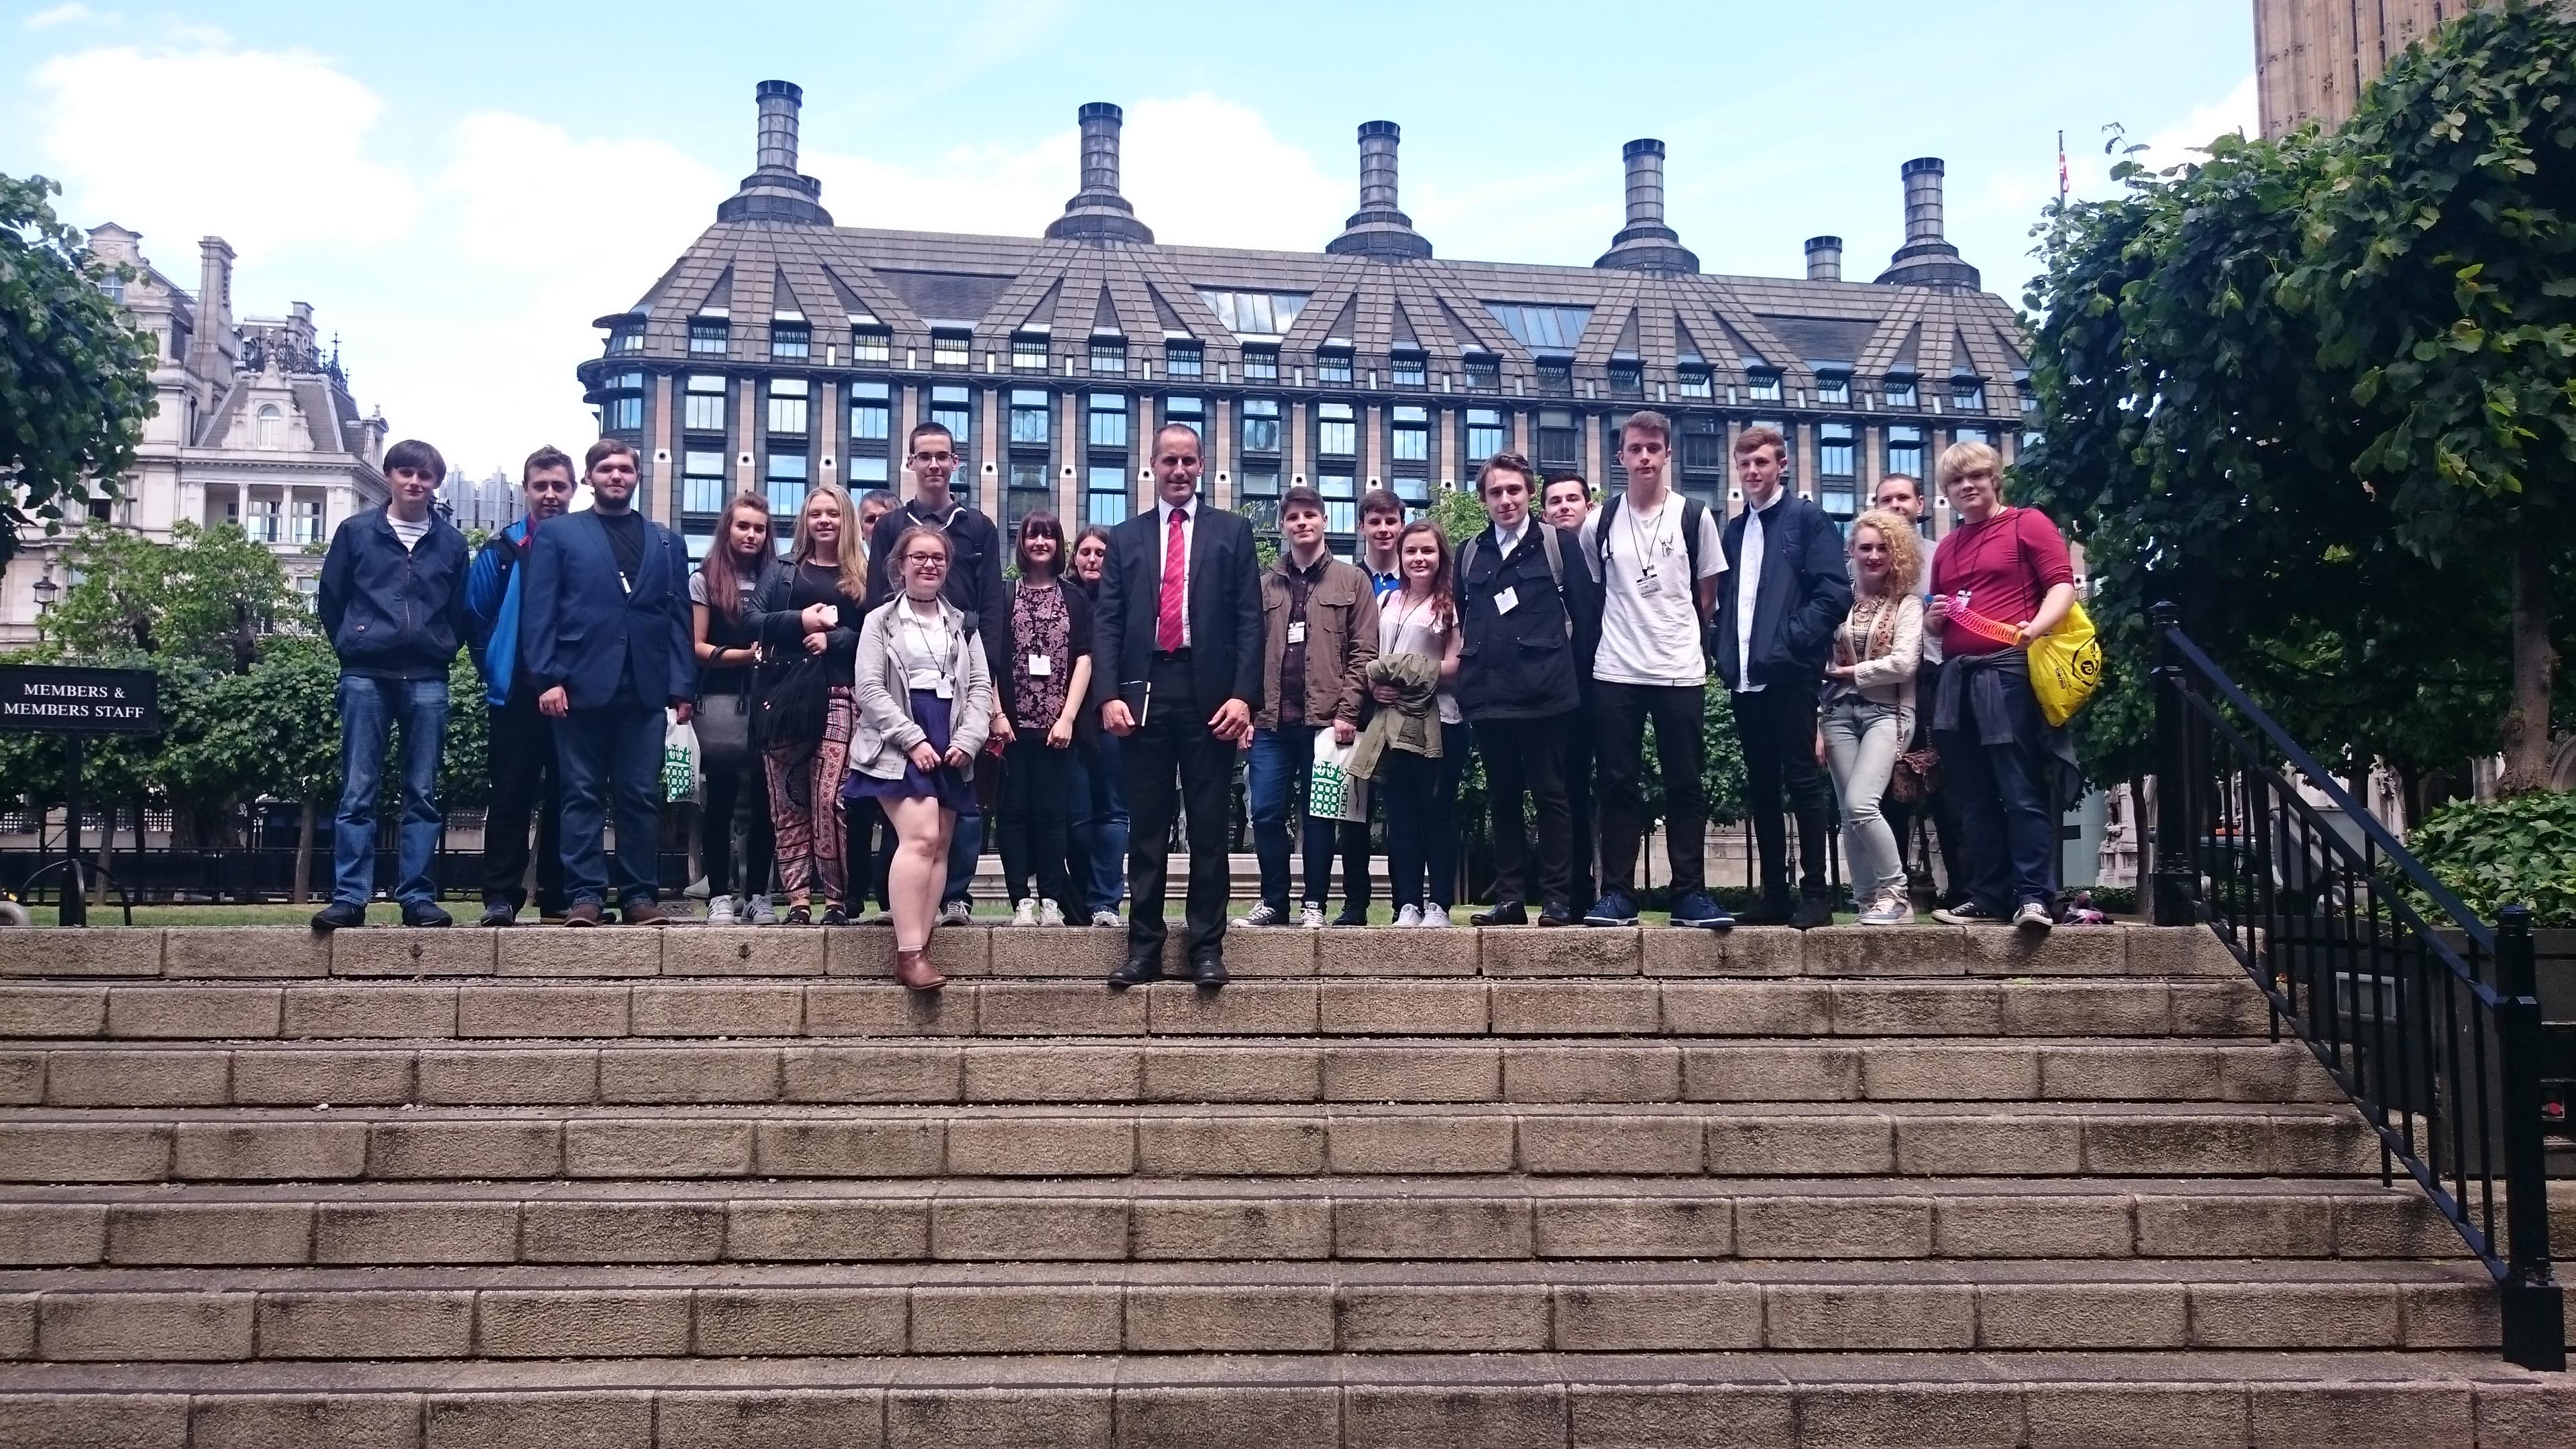 Labour MP Bill Esterson with Maghull High School students outside Parliament during their trip to Westminster.